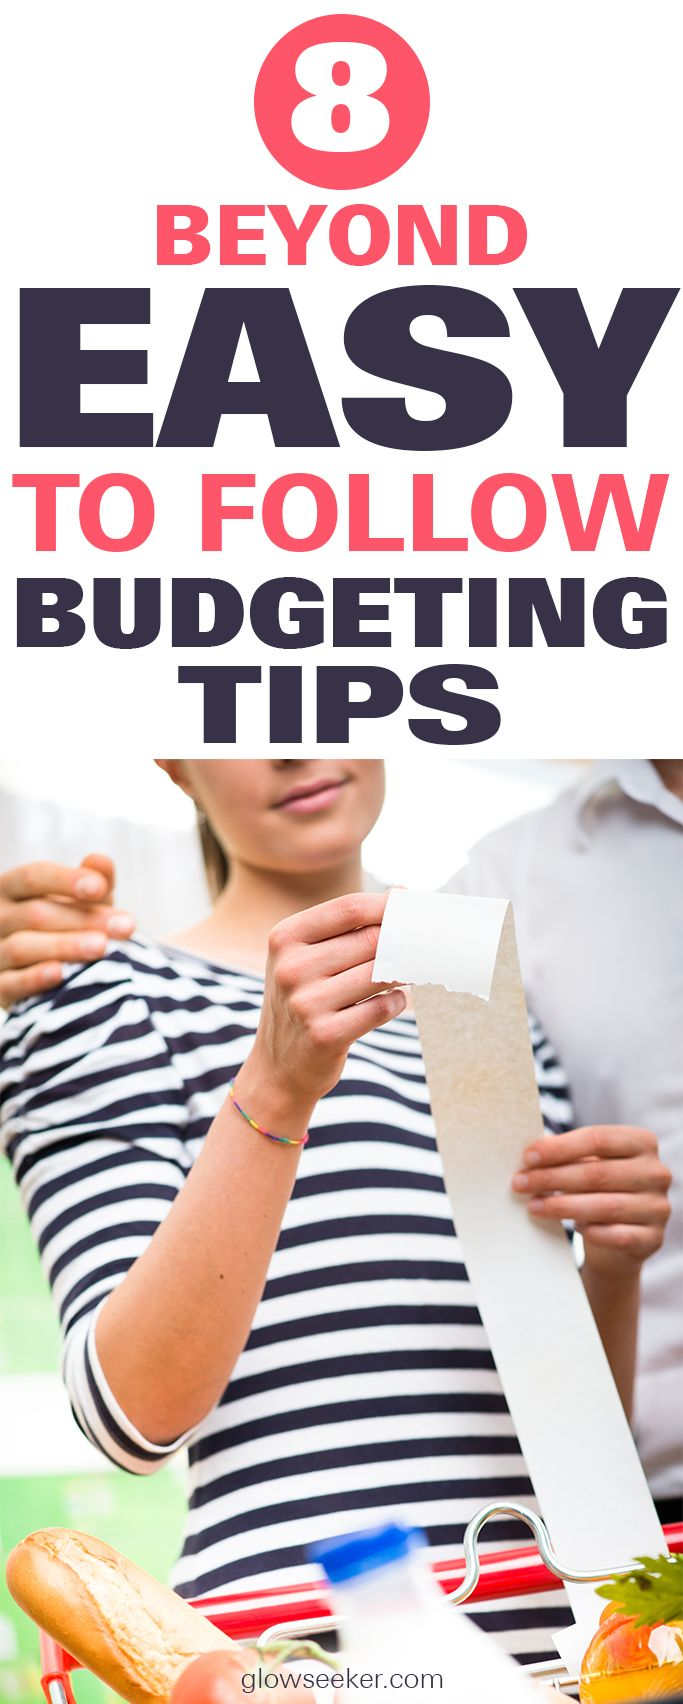 Frugal living made effortless with these 8 beyond easy to follow budgeting tips for beginners. If saving money and becoming debt free are your goals, then you're in the right place! #savingmoney #frugalliving #forbeginners #debtfree